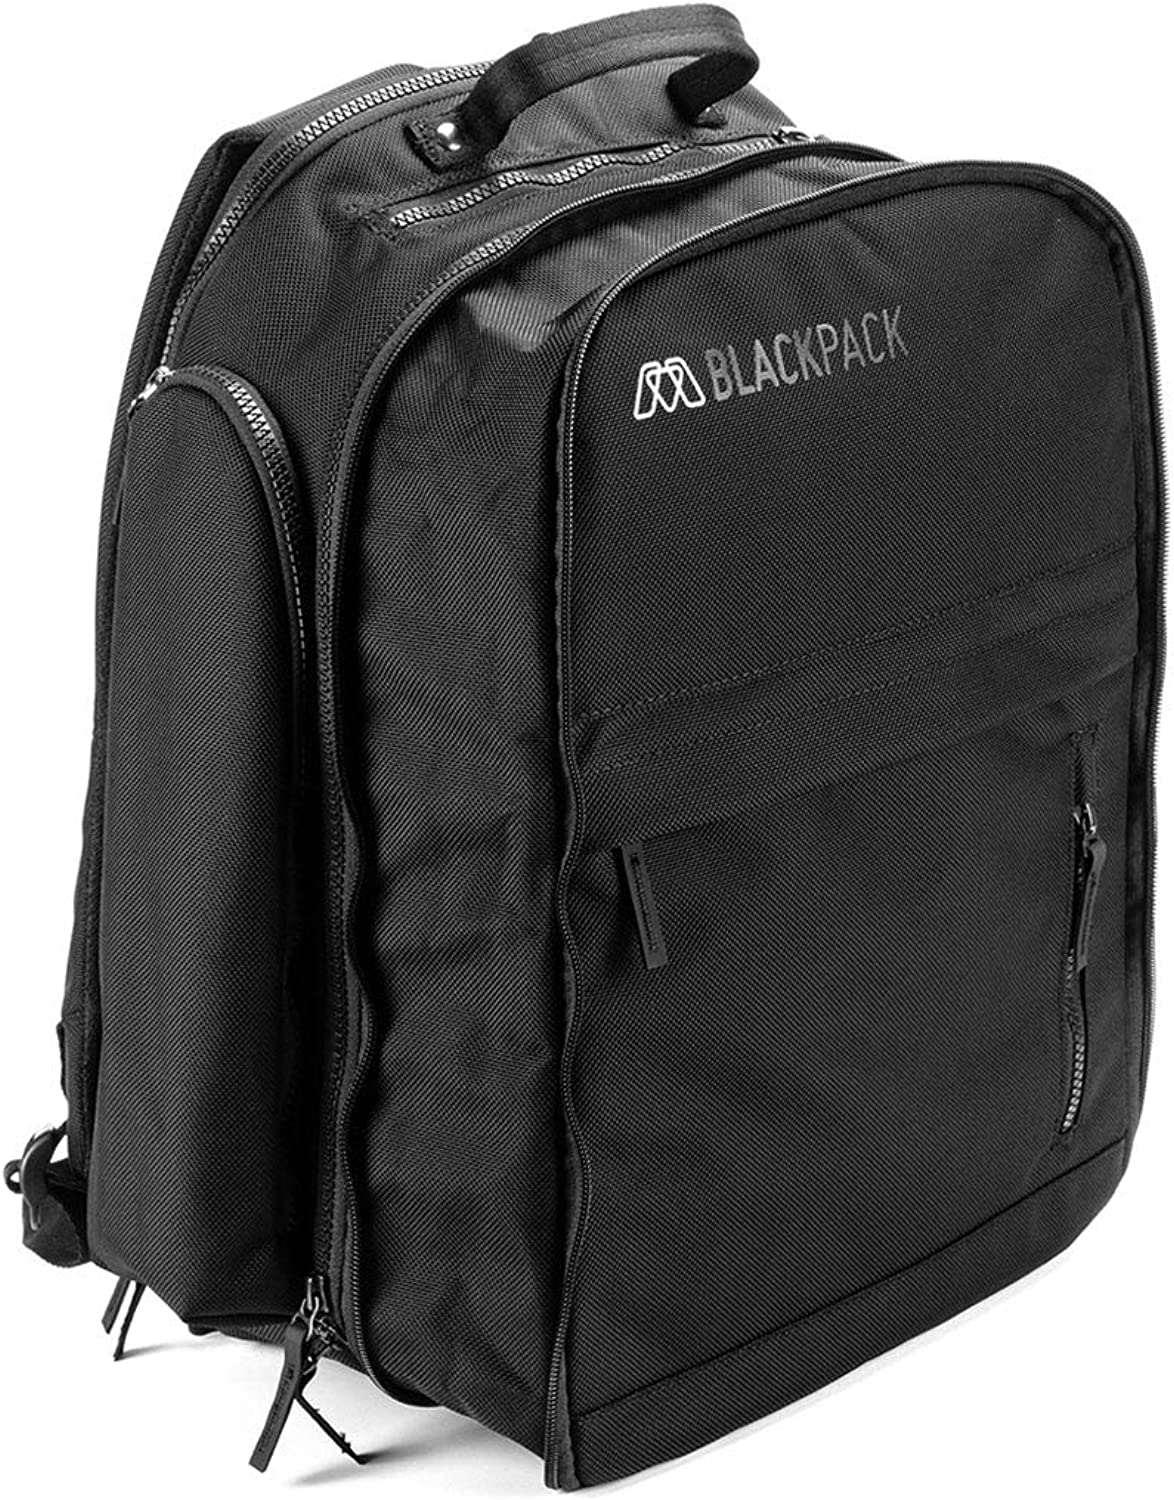 MOS BLACKPACK, Durable Electronics Travel Backpack for 15 Laptop, Tablet with built in cable managment